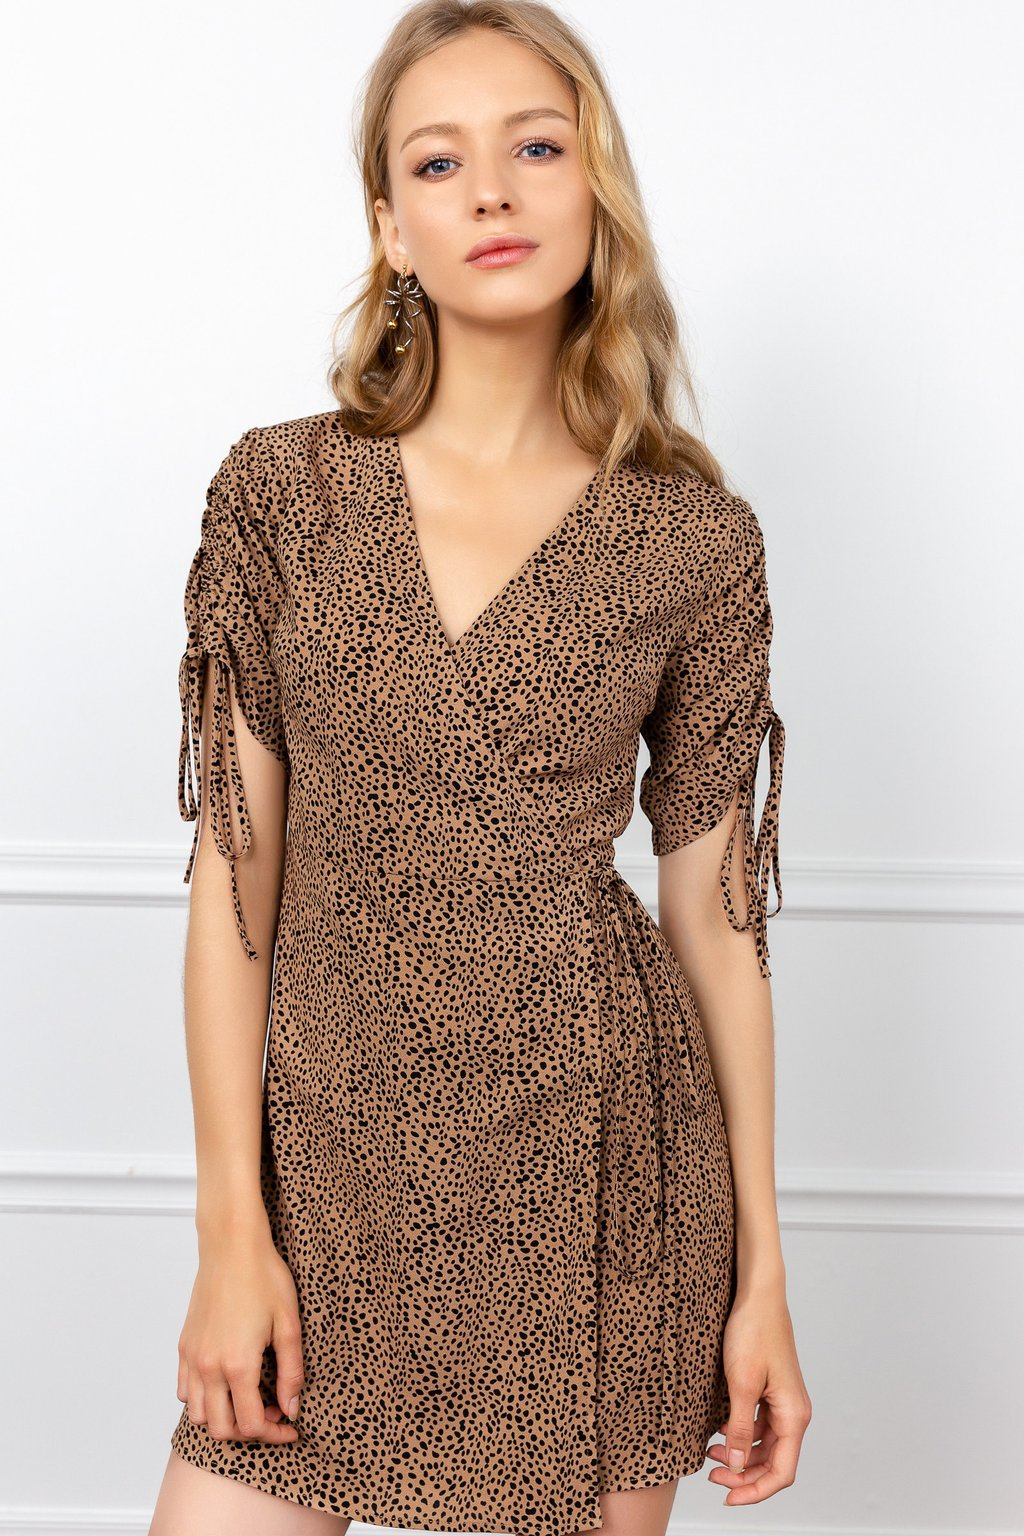 Cheetah Surplice Dress by J.ING la women's fashion